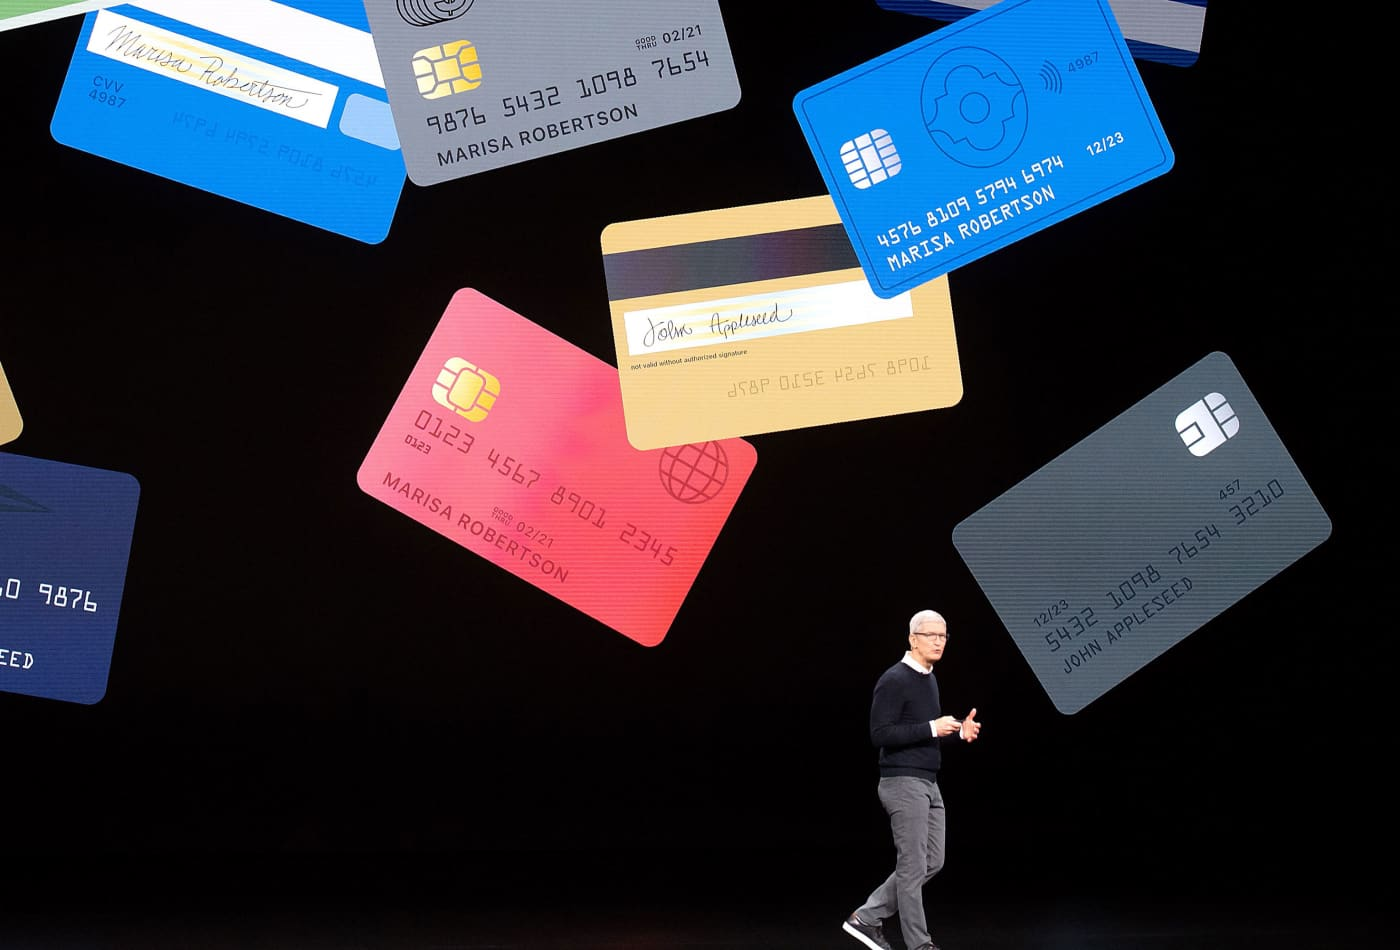 This developer was surprised that Apple Card didn't let him download spending data, so he built a fix